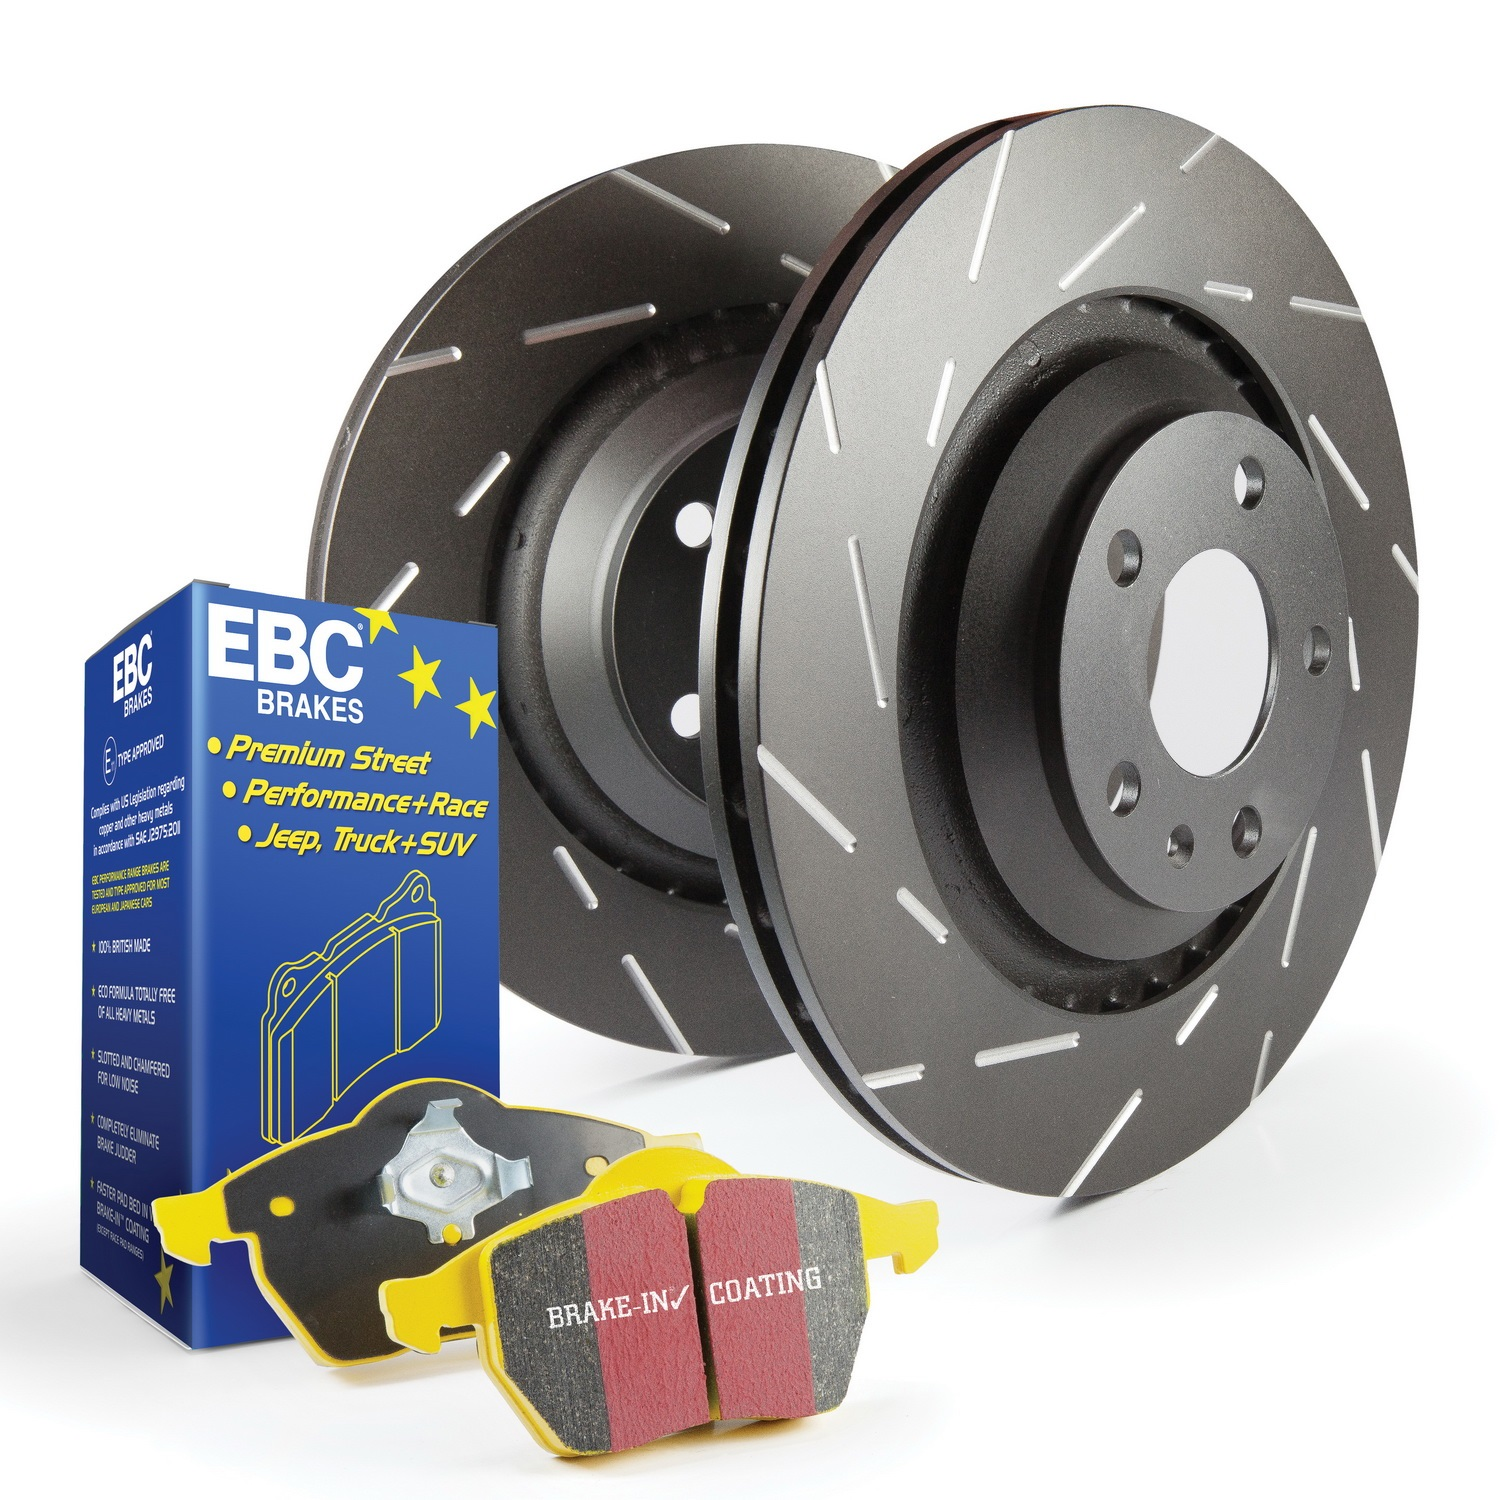 EBC Brakes S9KF1783 S9 Kits Yellowstuff and USR Rotors Fits 15-18 Camaro CT6 CTS